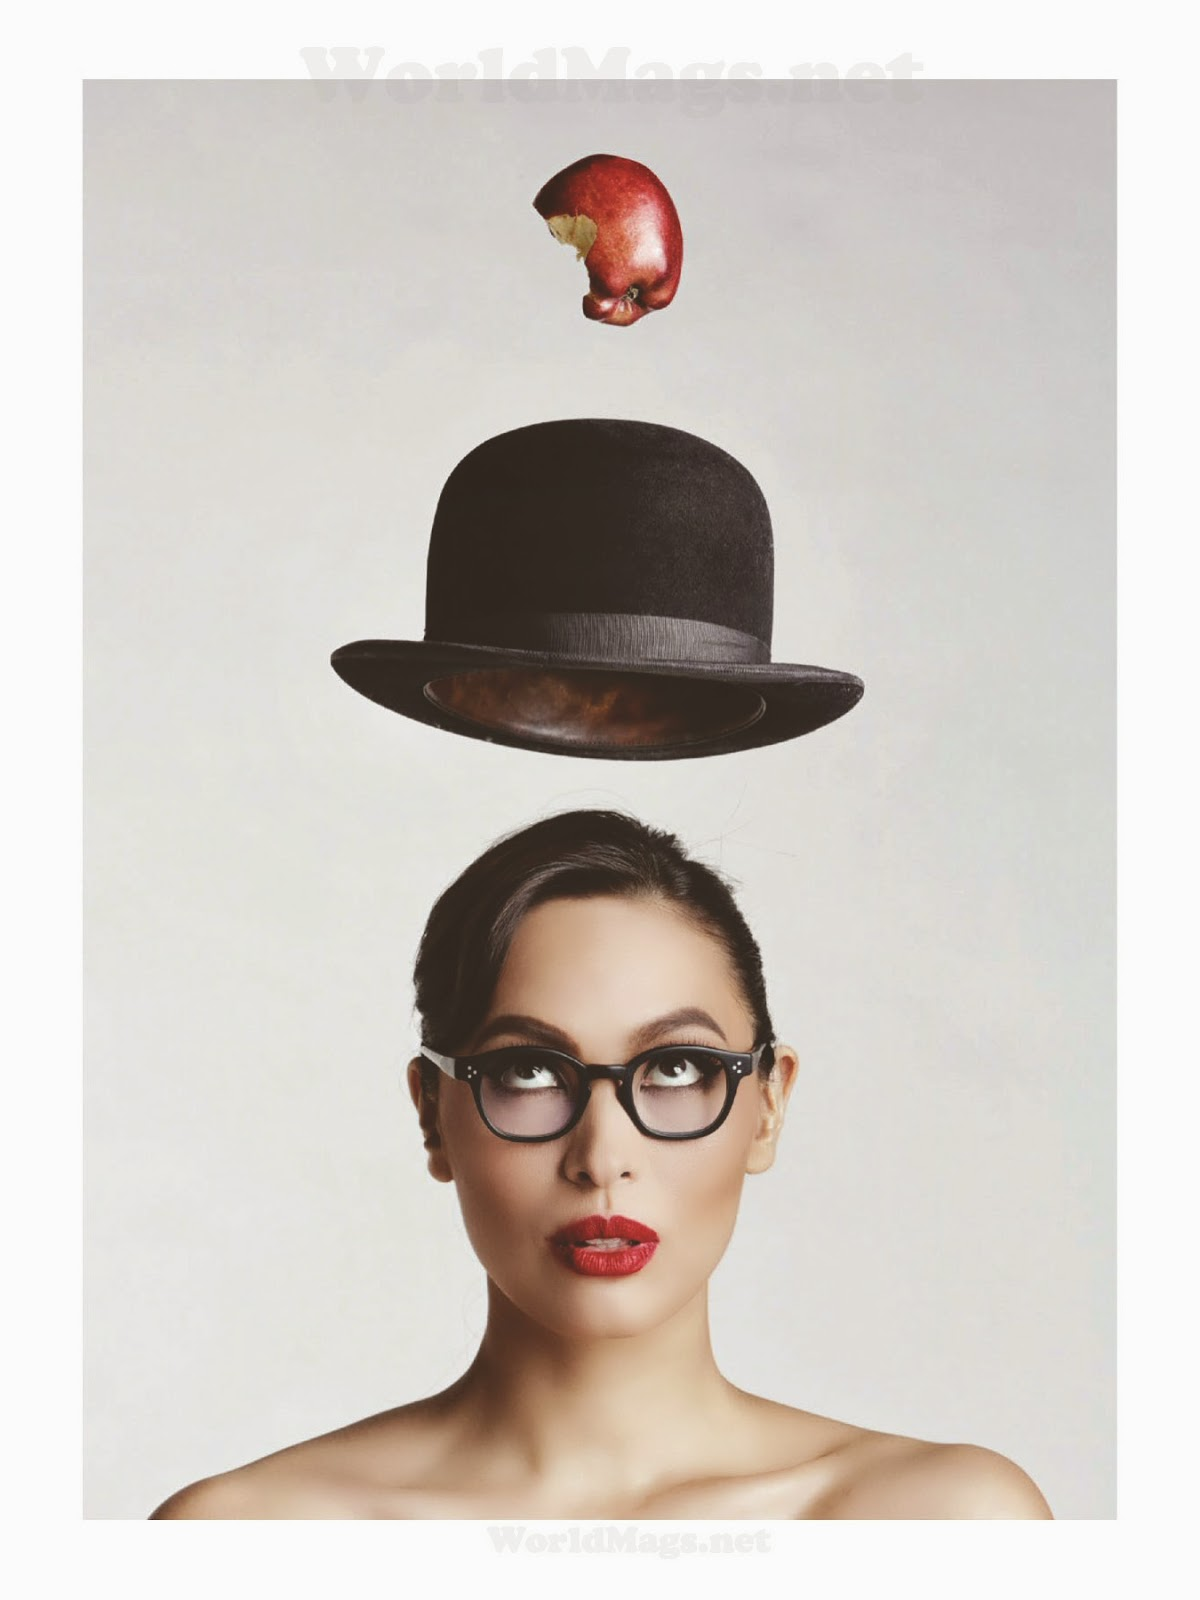 A shot from Rogue Magazine with elements from Magritte